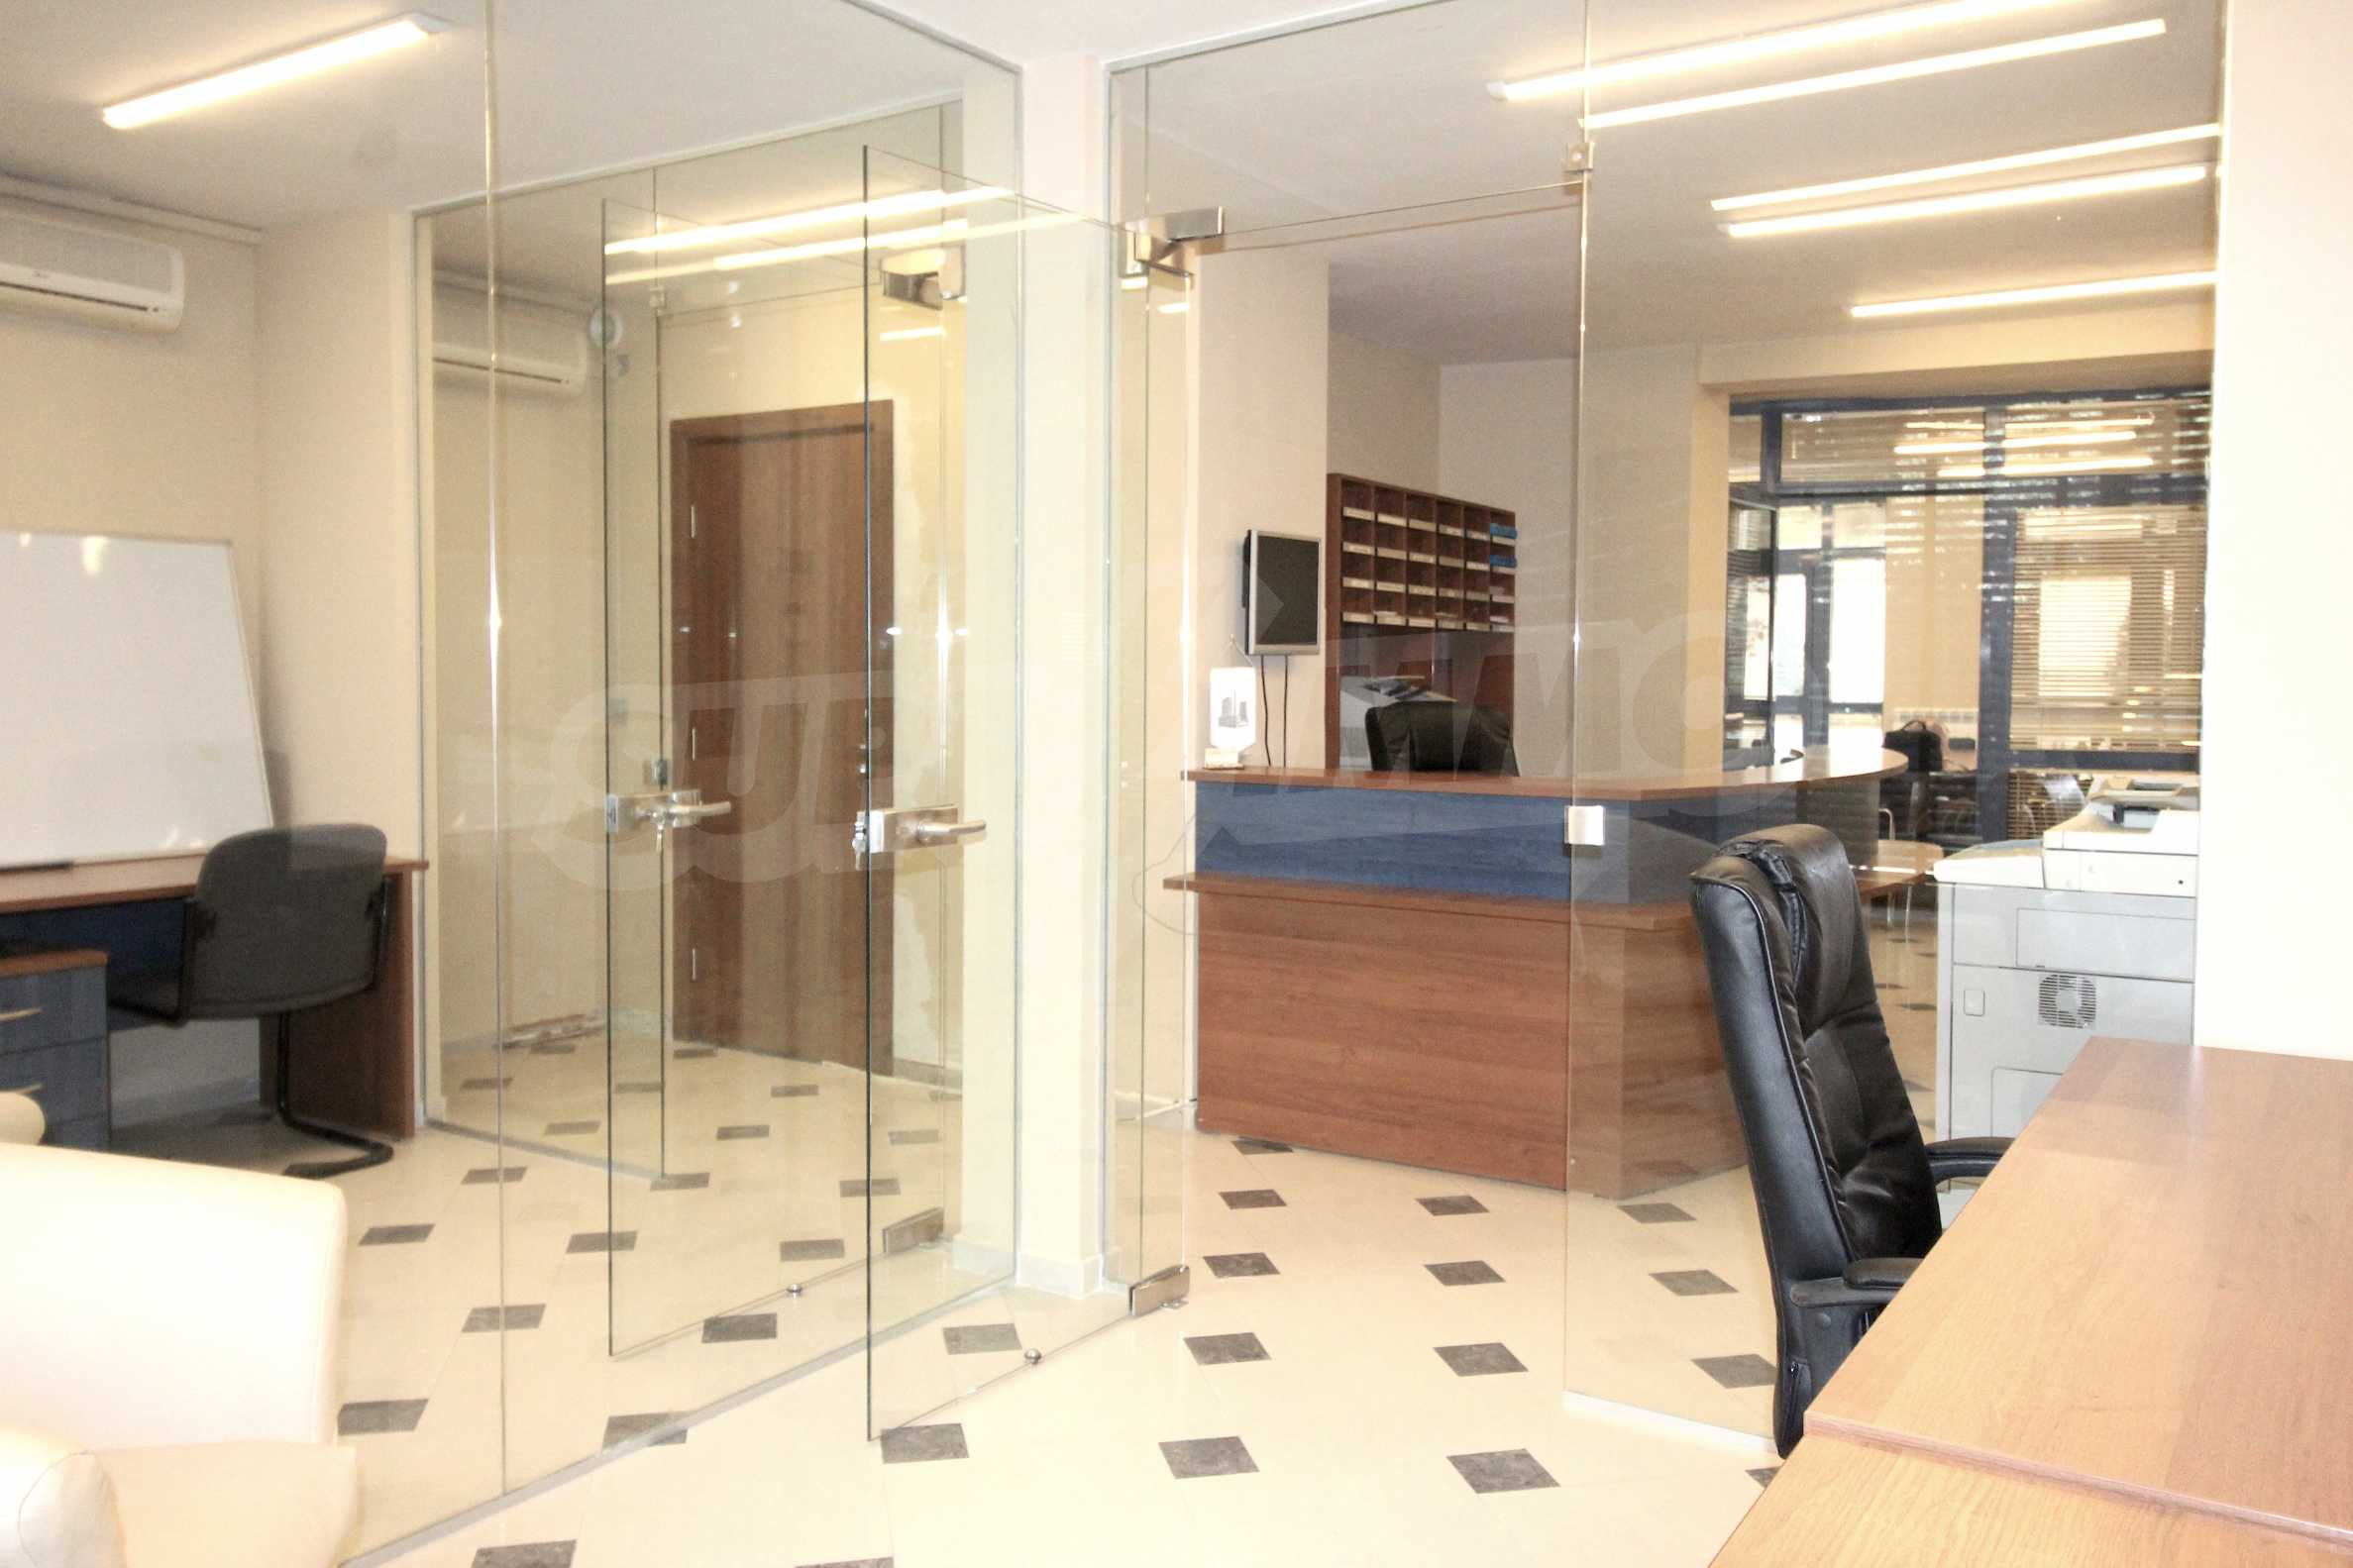 Office for rent in Sofia, Bulgaria - Rentals - office.